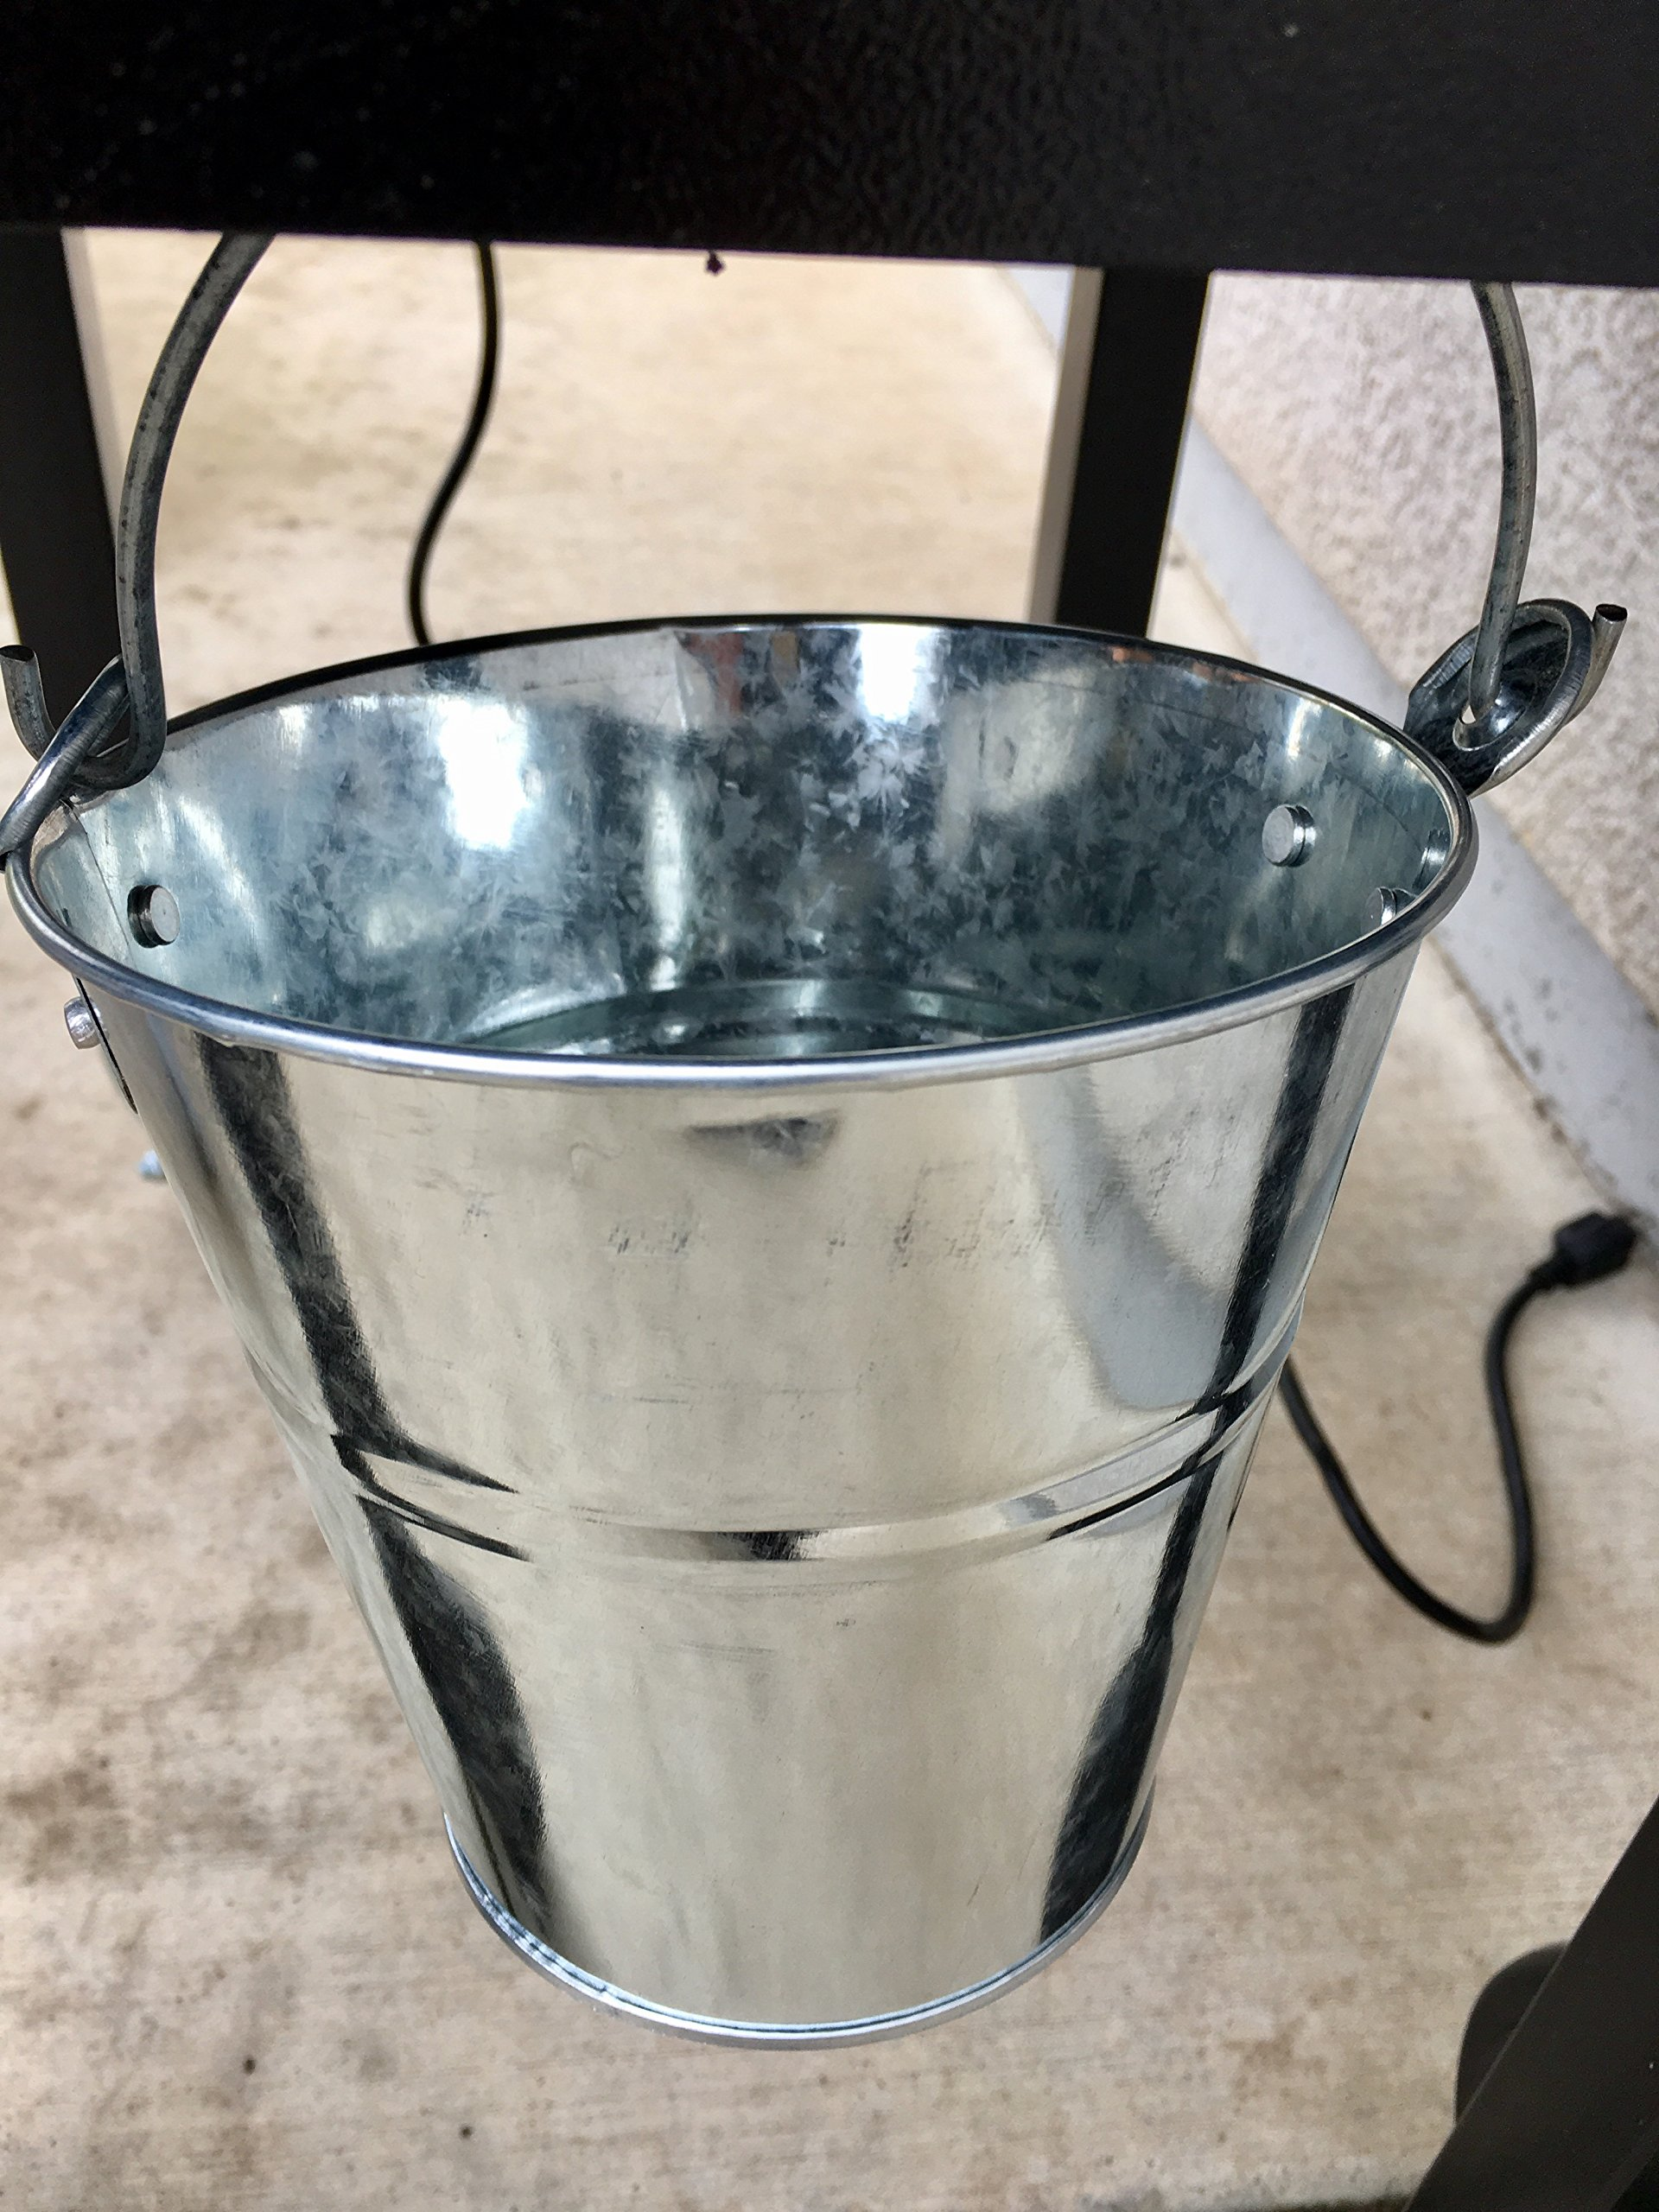 10 LARGE Galvanized BUCKETS 6'' TALL 6.25'' WIDE AT TOP 4'' WIDE AT BOTTOM ARTS CRAFTS WEDDING by DIRECT IGNITER (Image #3)